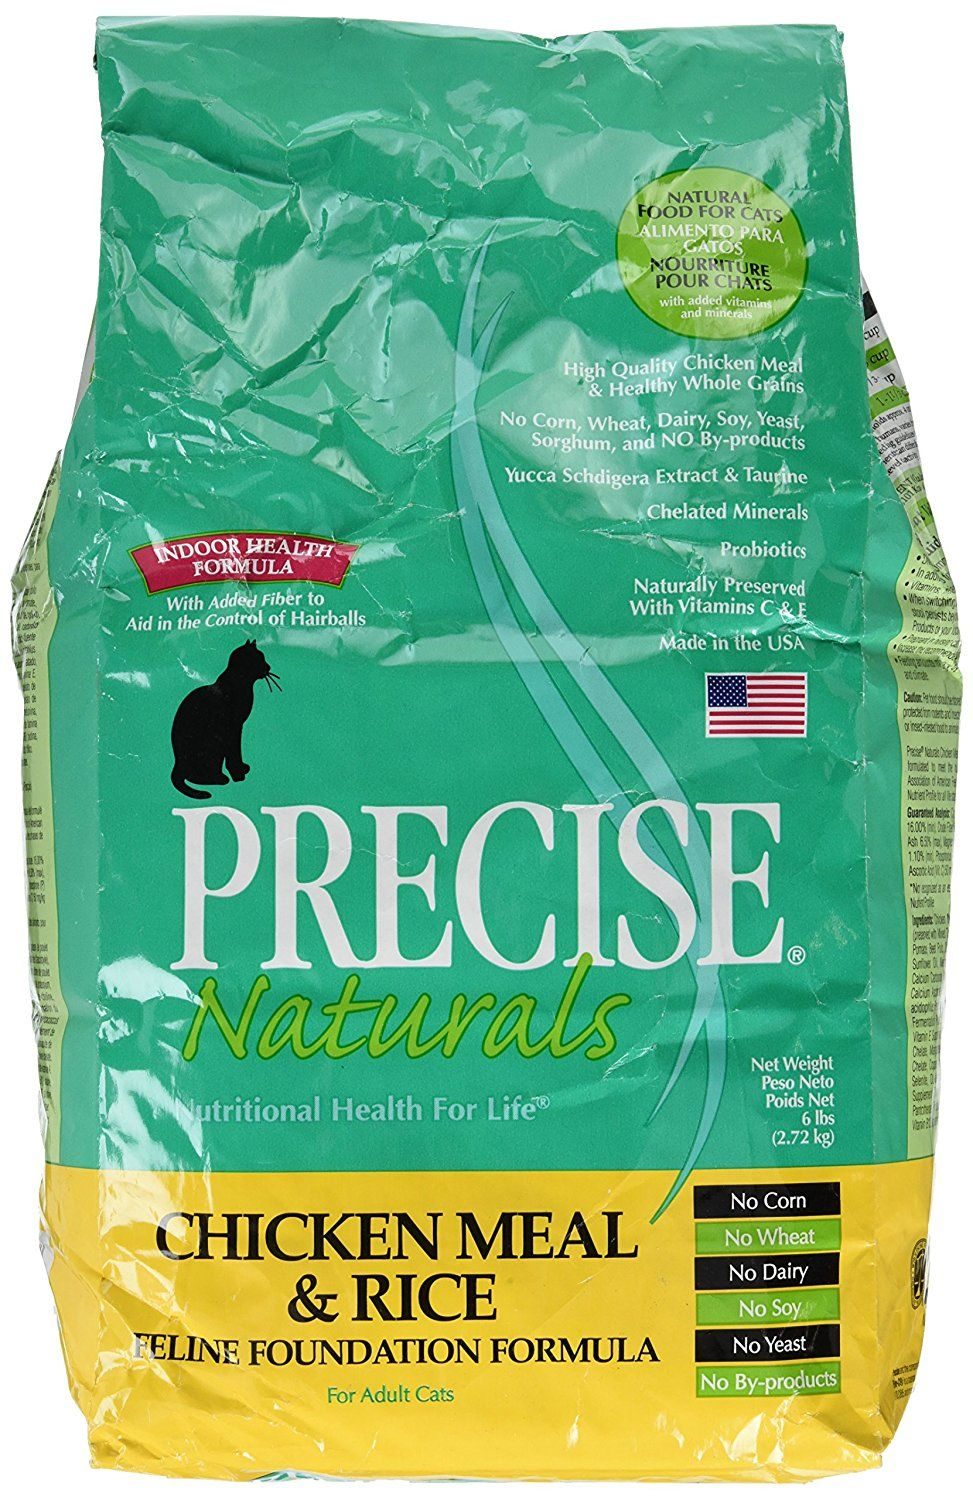 Do Kittens Need Wet Or Dry Food